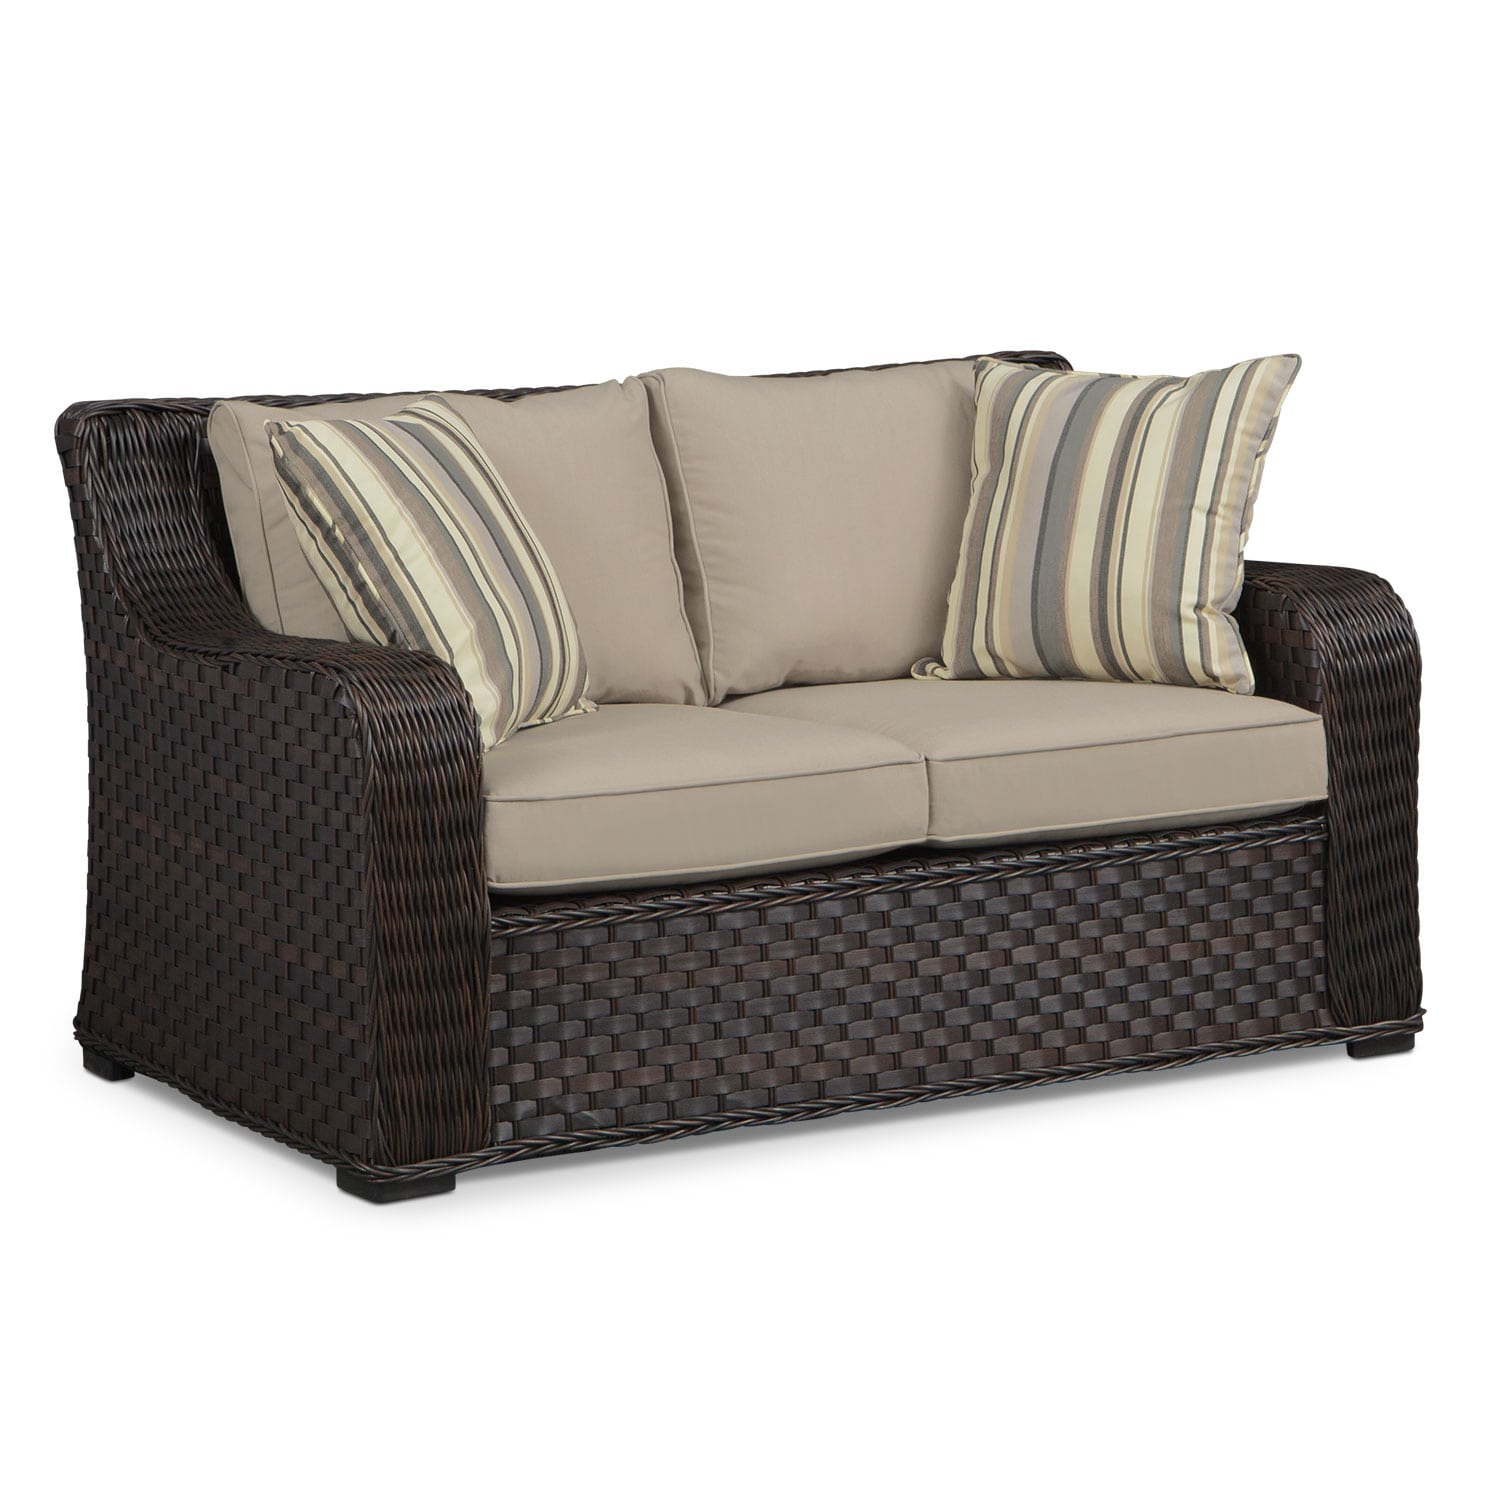 Doral Outdoor Loveseat